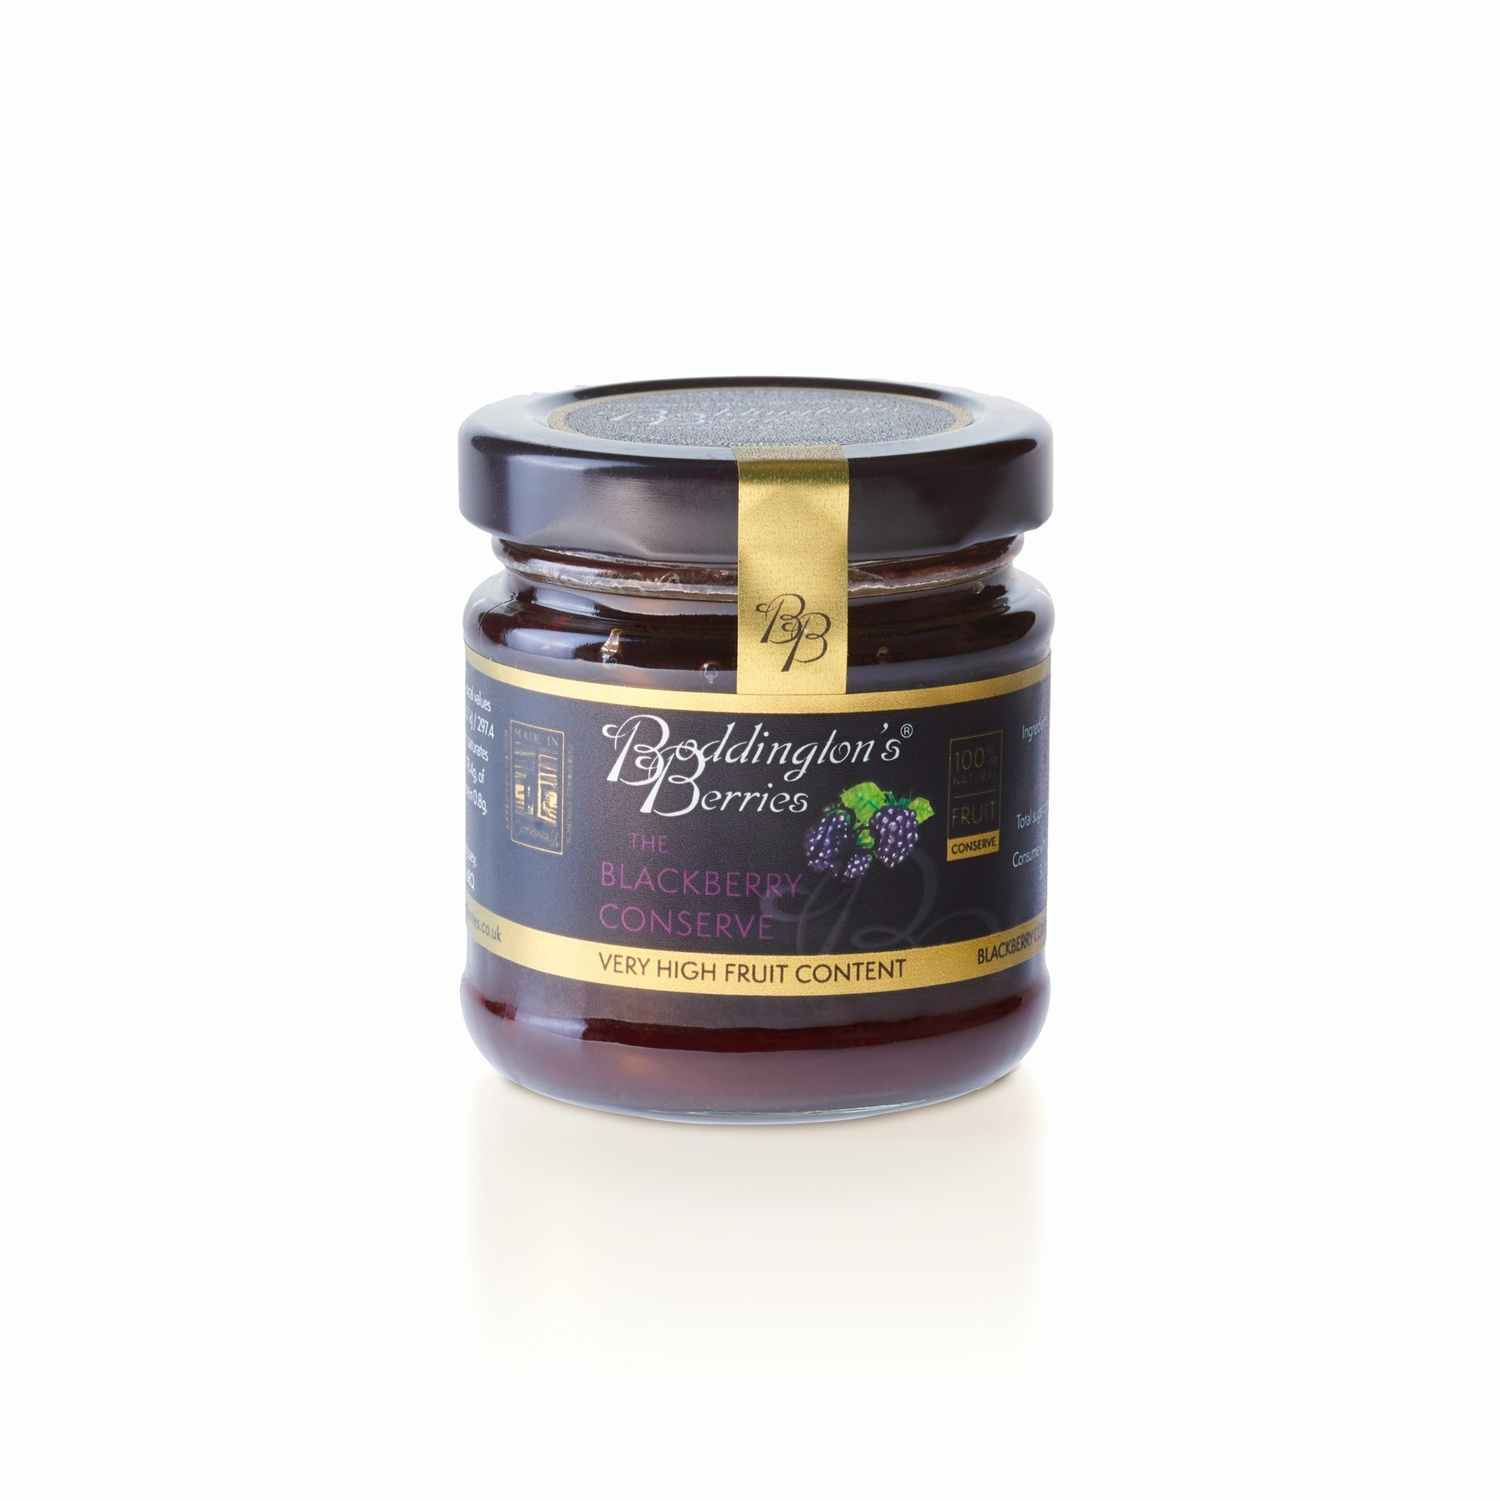 Blackberry Conserve - 113g Jar Blackberry Conserve